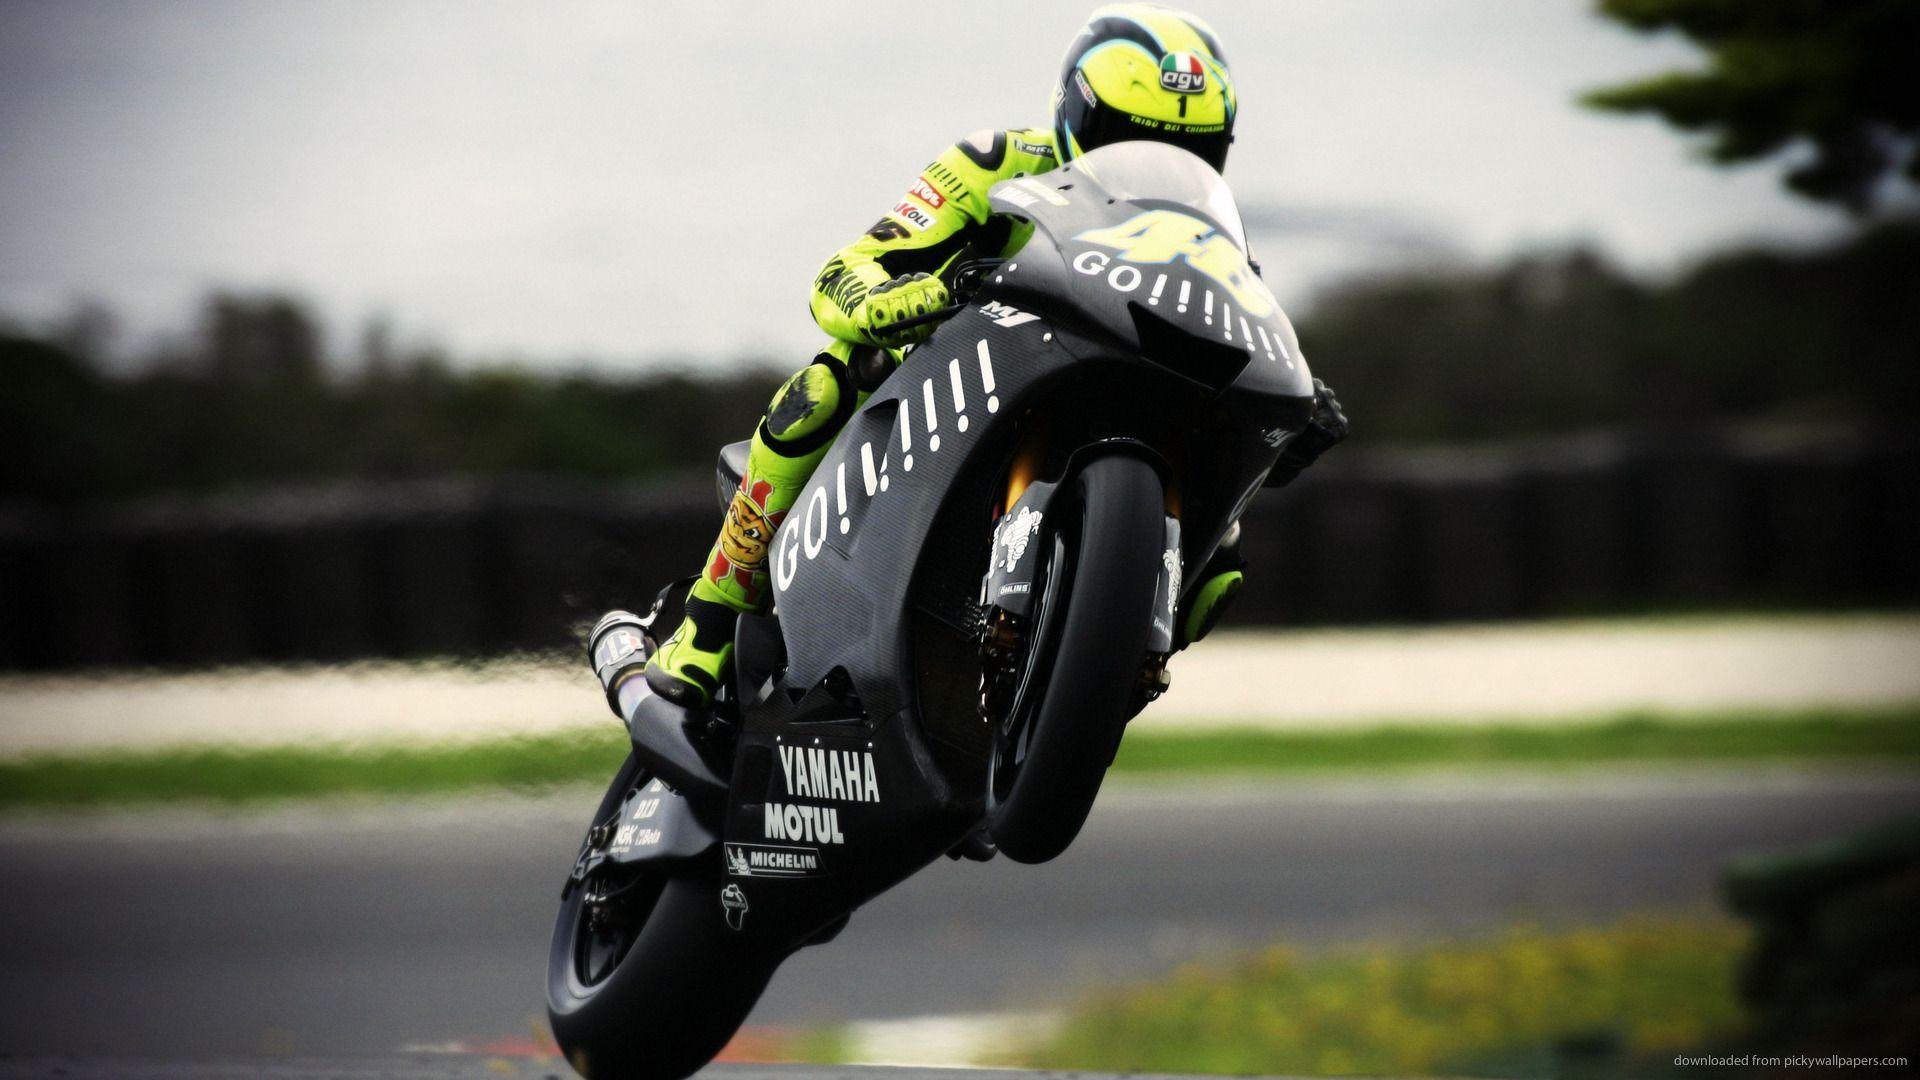 Best images about vr valentino rossi on pinterest ducati 19201200 best images about vr valentino rossi on pinterest ducati 19201200 wallpaper valentino rossi voltagebd Gallery